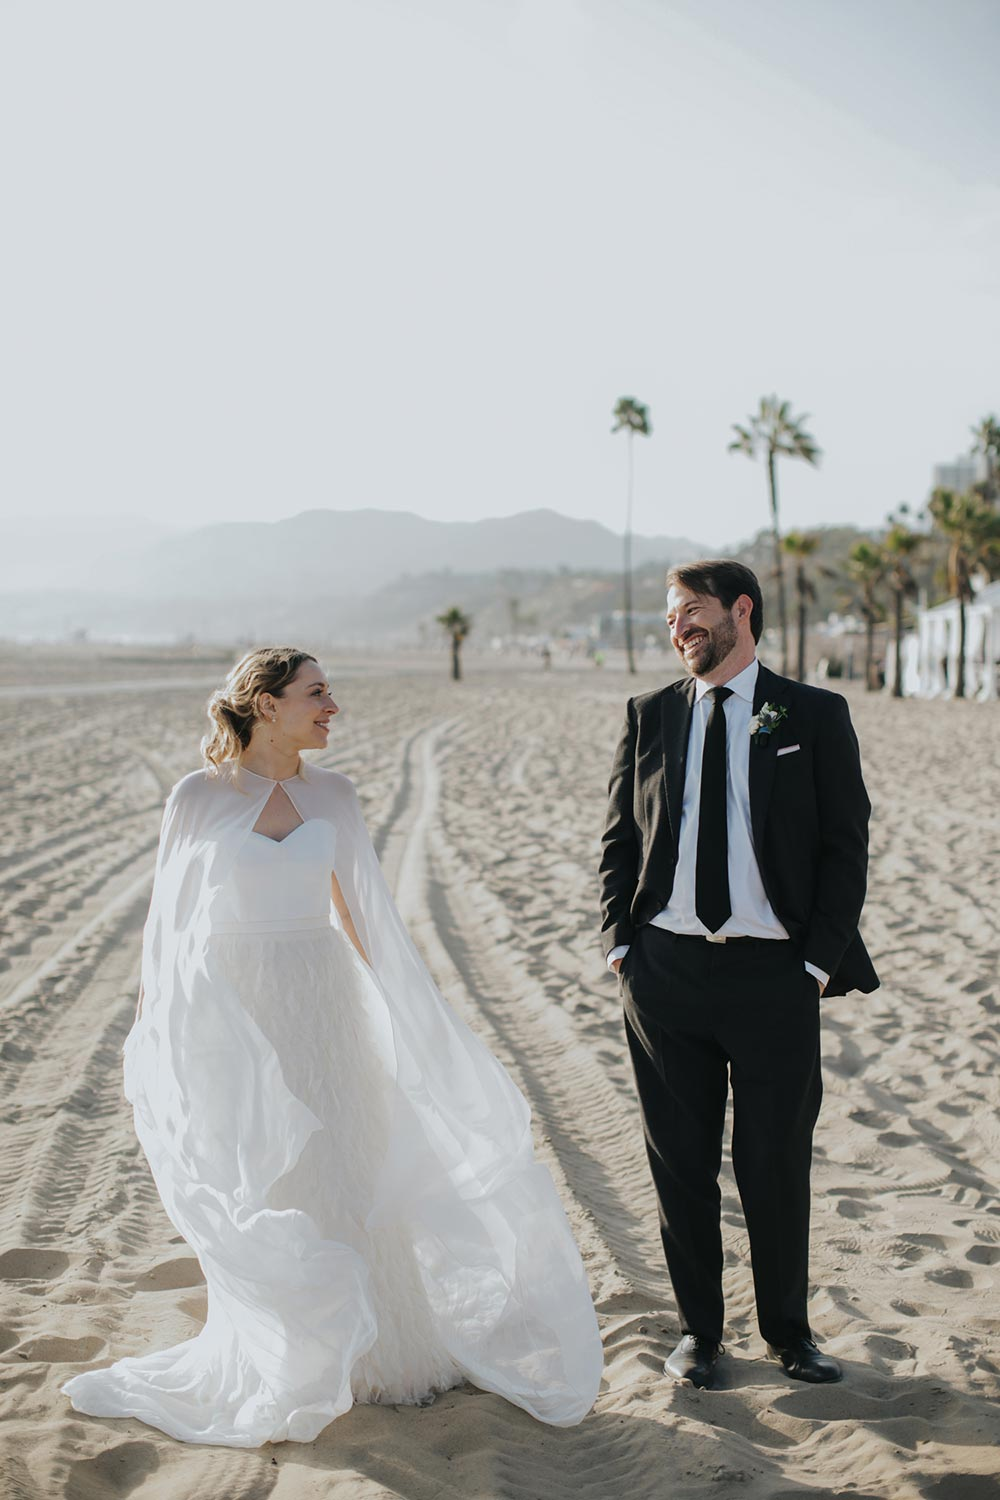 bridal cape and feathered wedding dress and black groom suit